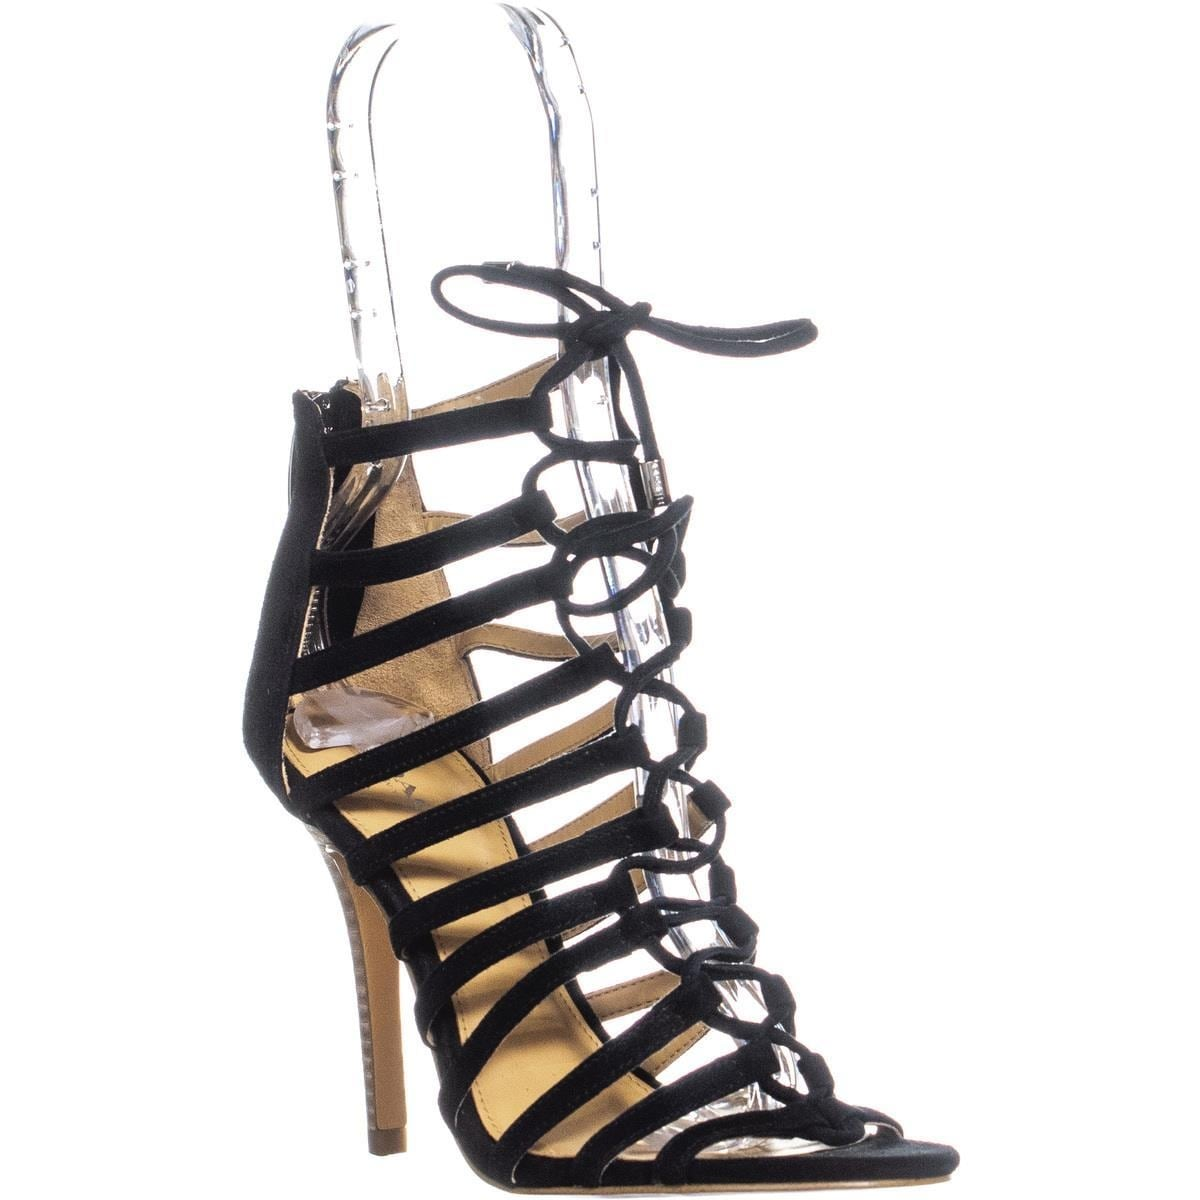 a23c189616c Buy Coach Women s Heels Online at Overstock